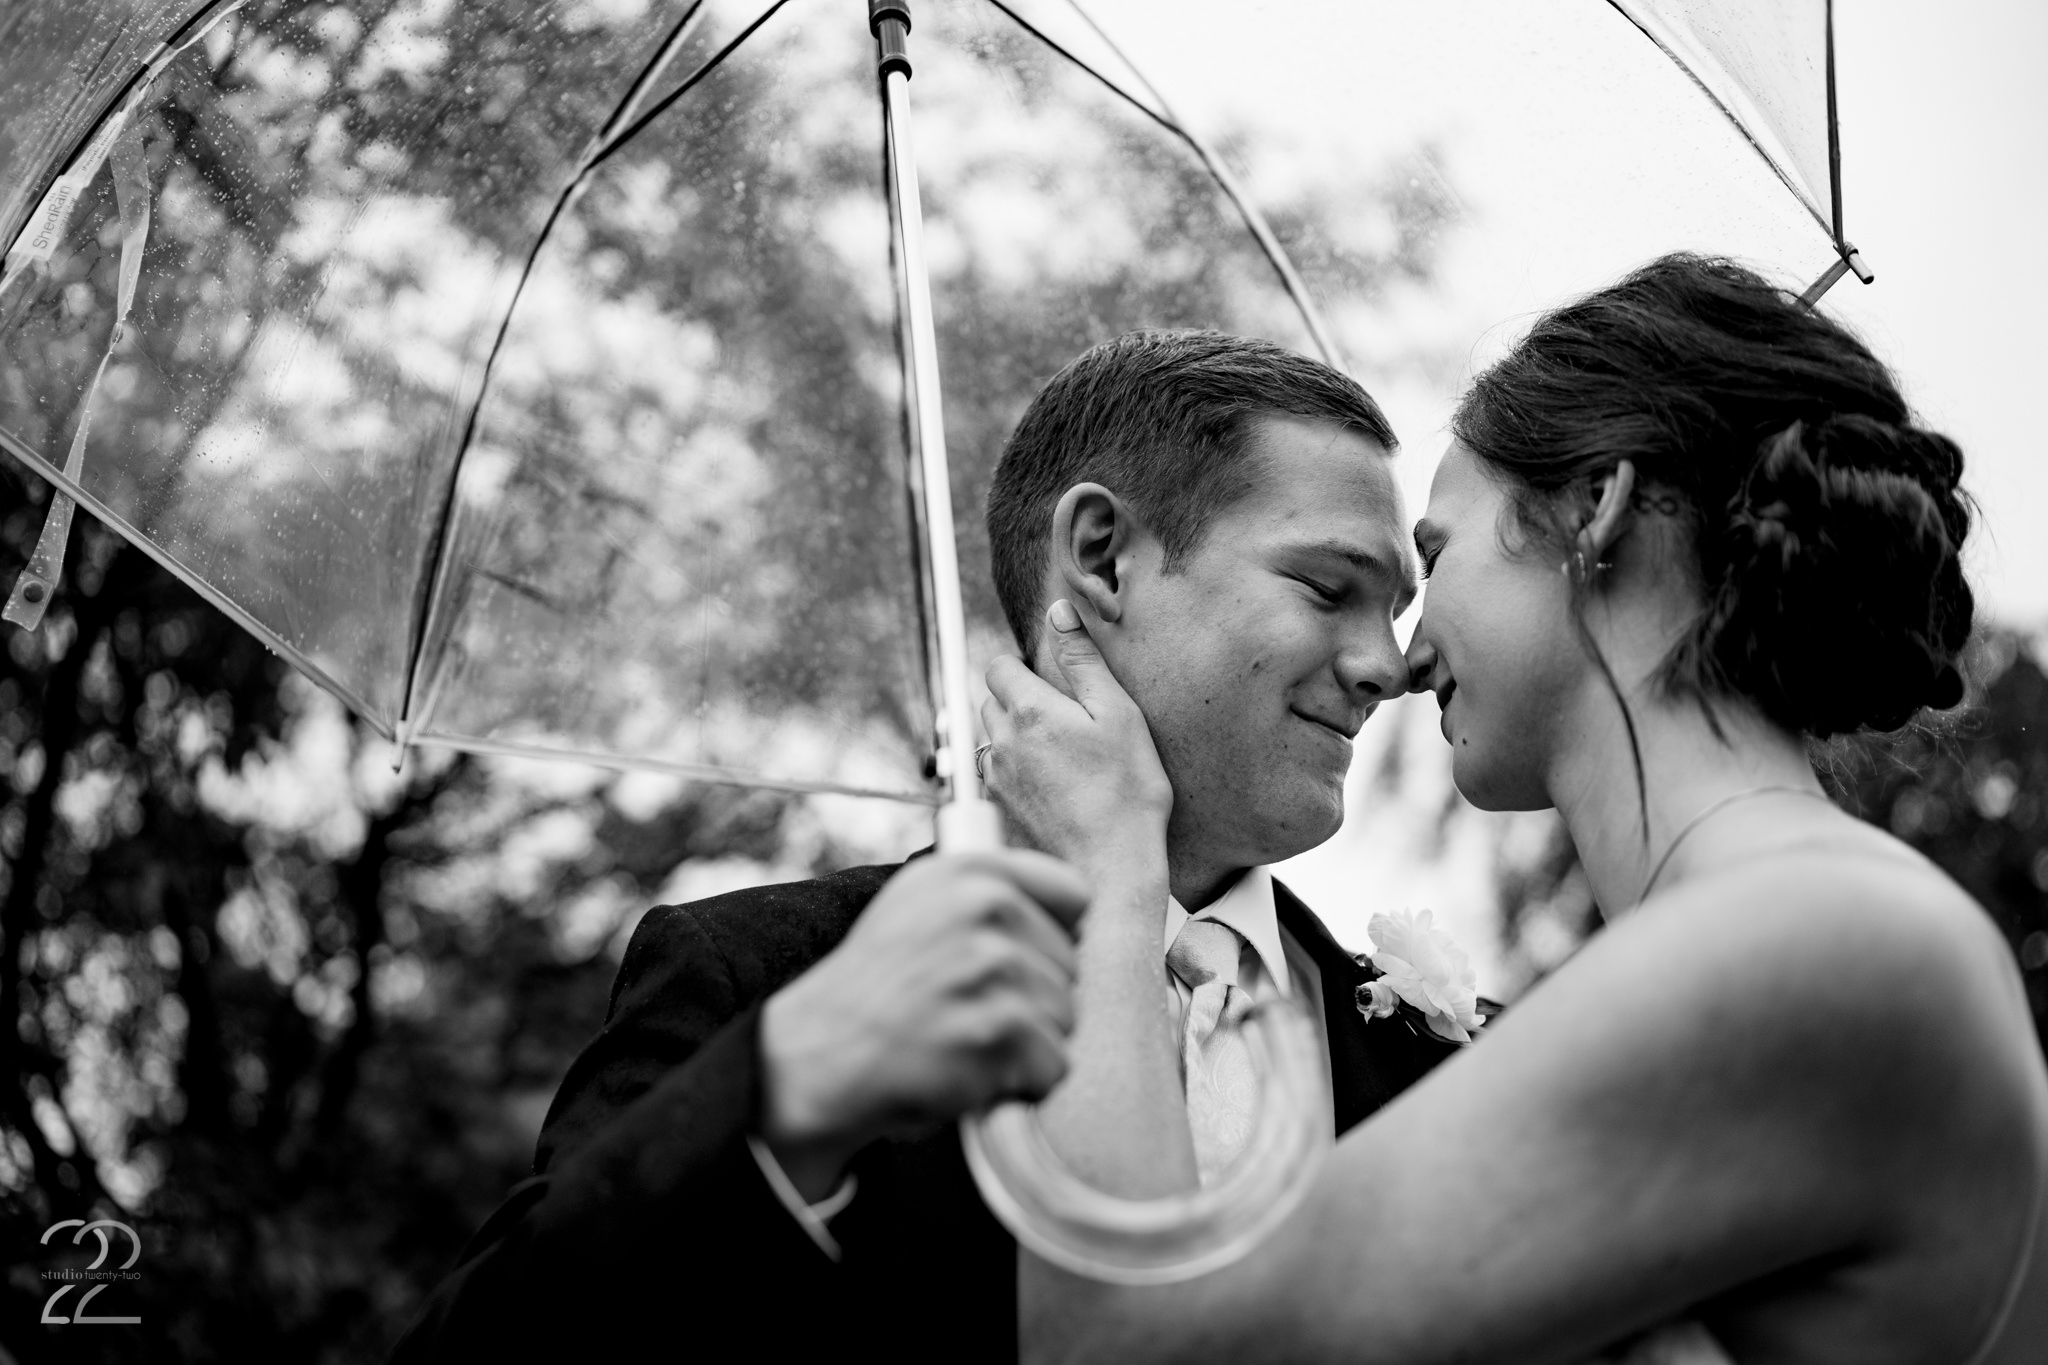 Rainy Farmhouse Wedding - Cincinnati Wedding Photographer - Studio 22 Photography